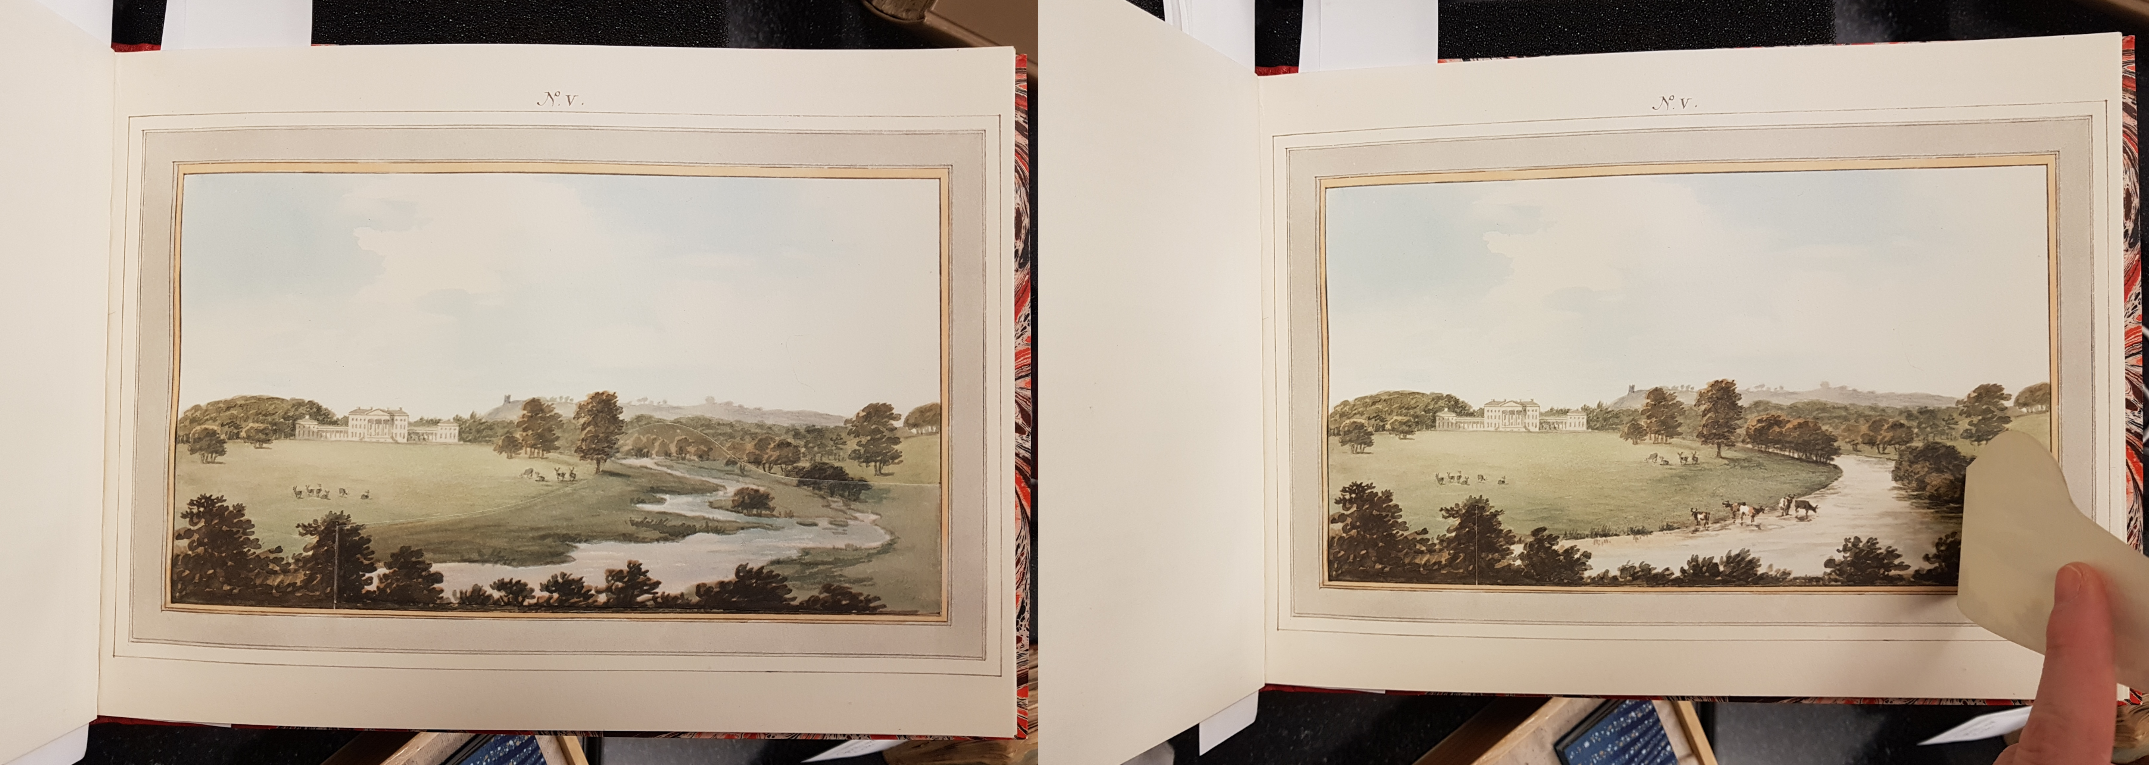 A montage of two photos. The first shows a river with an irregular bank. The second photo shows the same landscape with a paper flap that was atached to the image lifted to reveal a more regular riverbank and animals wading in the river.